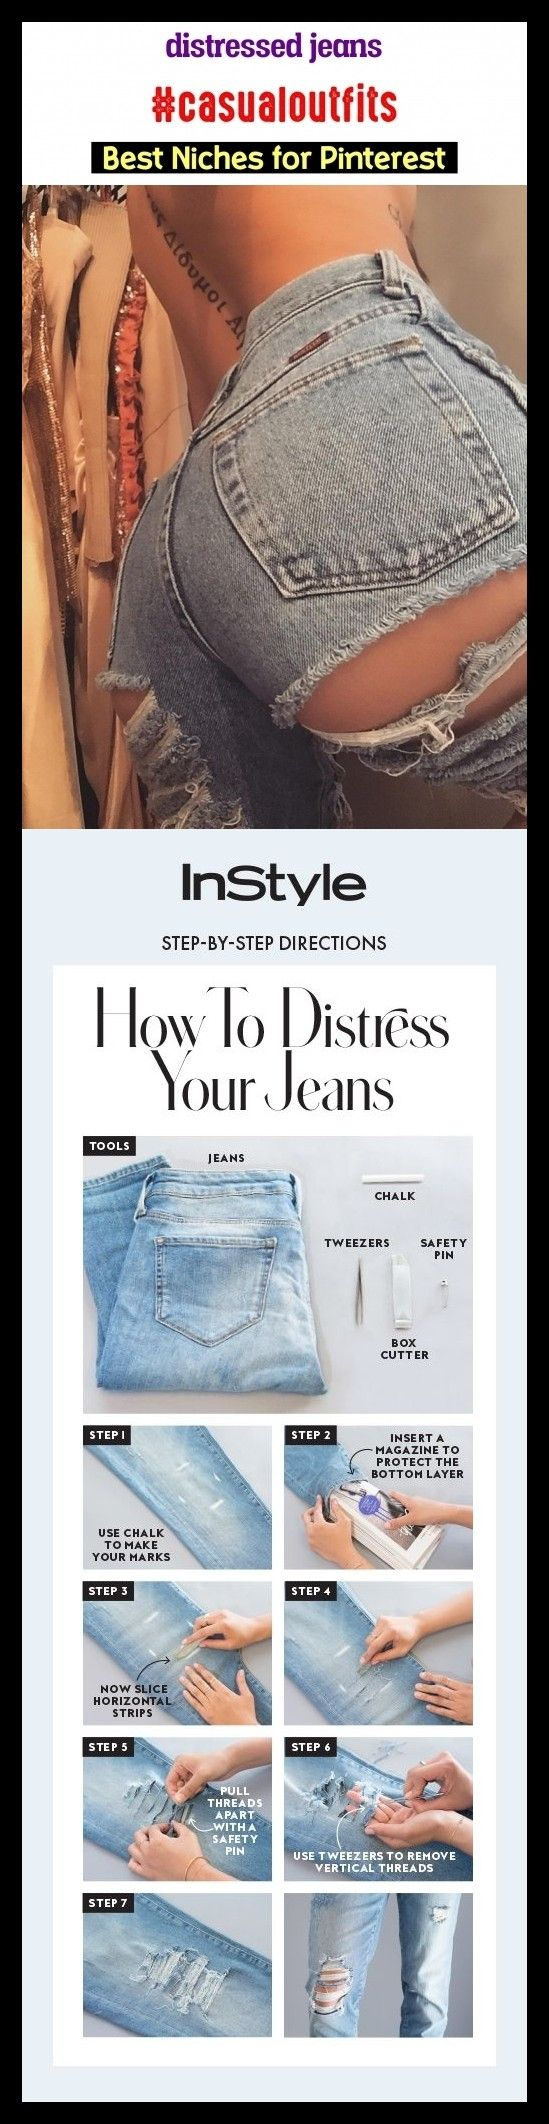 Distressed jeans #casualoutfits #seo #blog #niches #trending. skinny jeans, jean...